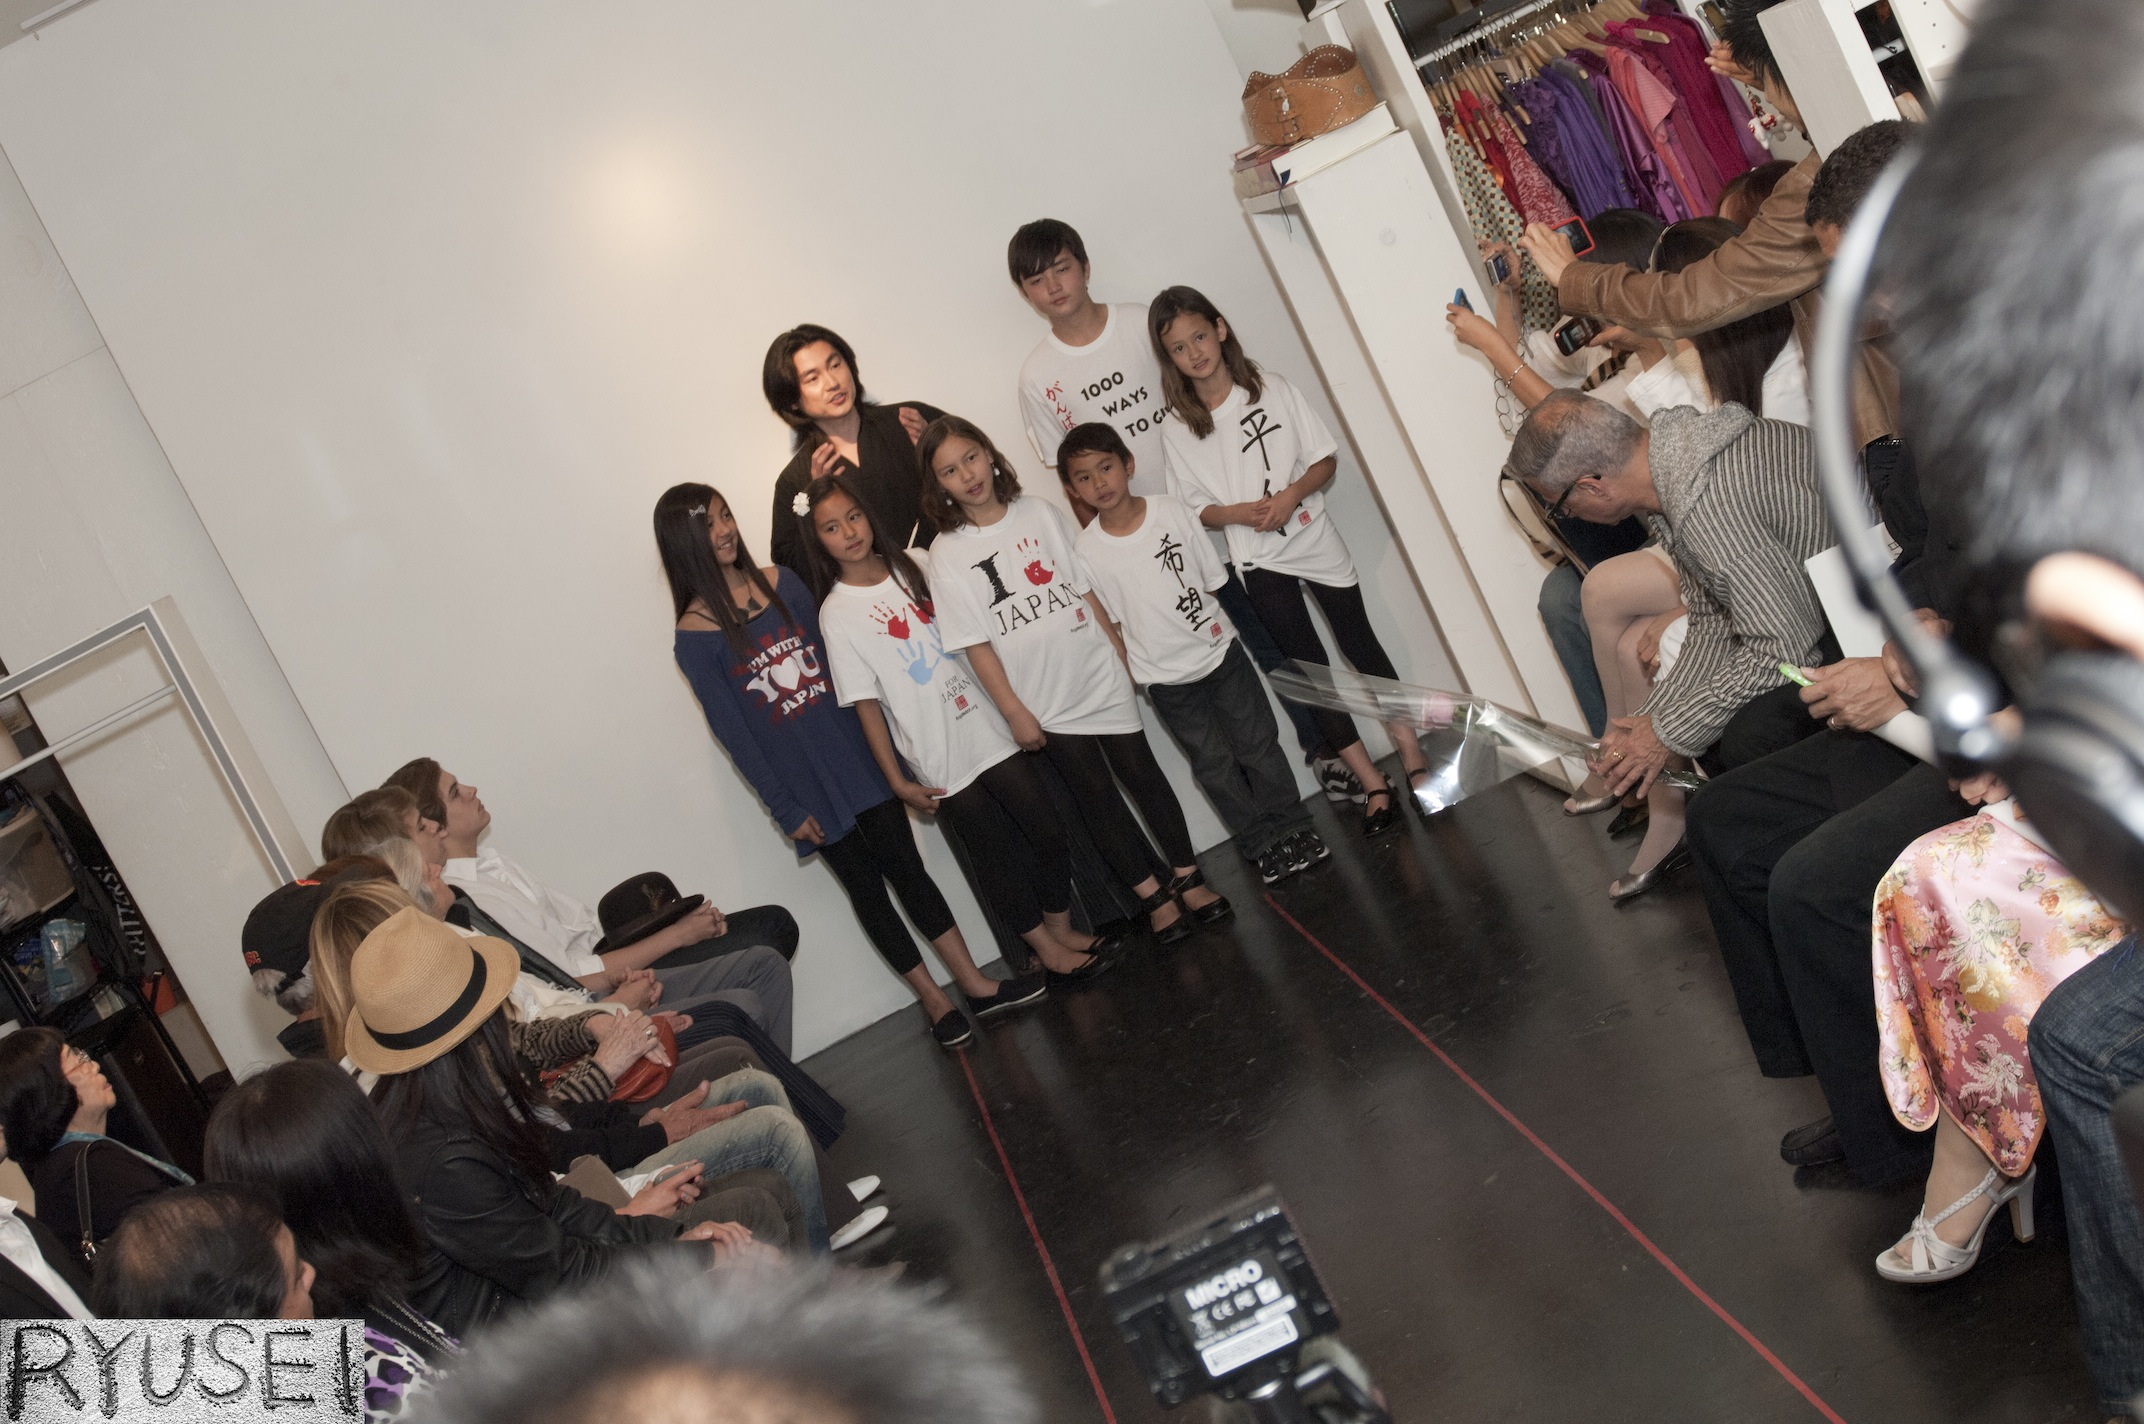 2011-5-20「2011 Japan Relief Fashion Show Los Angeles」